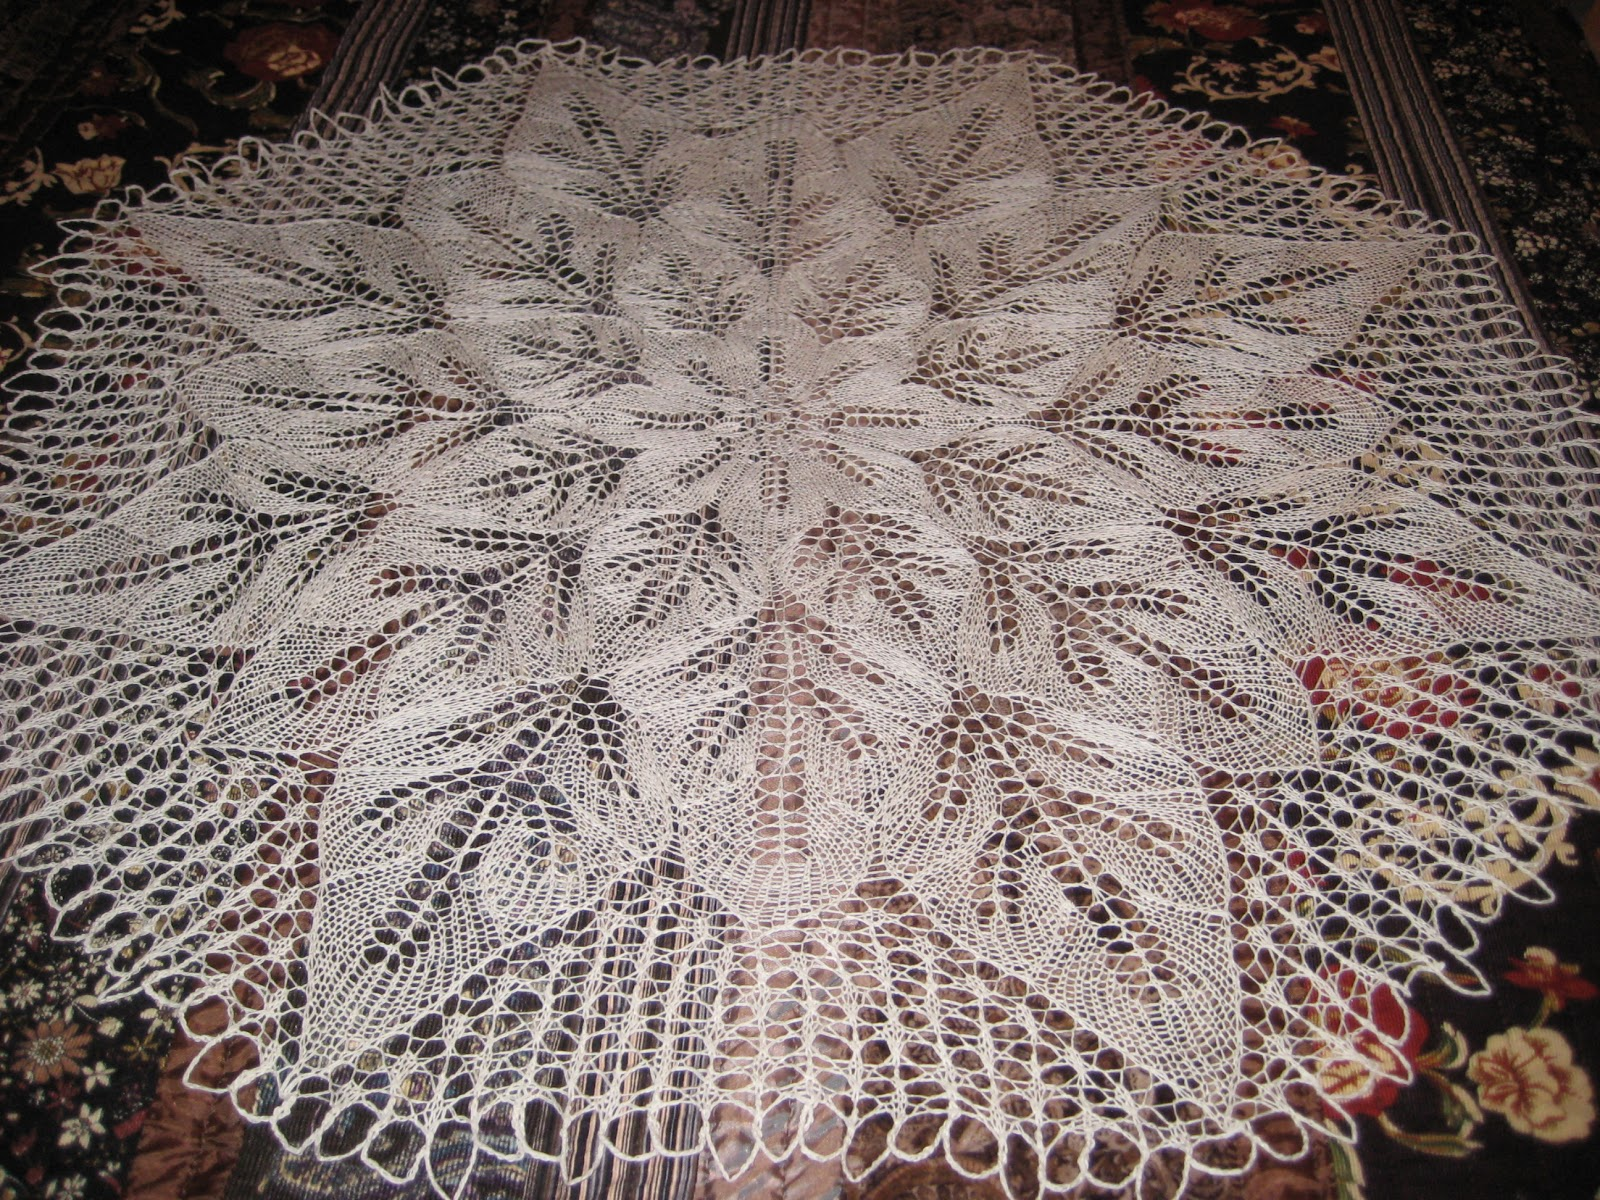 Knitting Pattern For Lace Tablecloth : Sweet n Pretty Things: More knitted lace tablecloth goodness